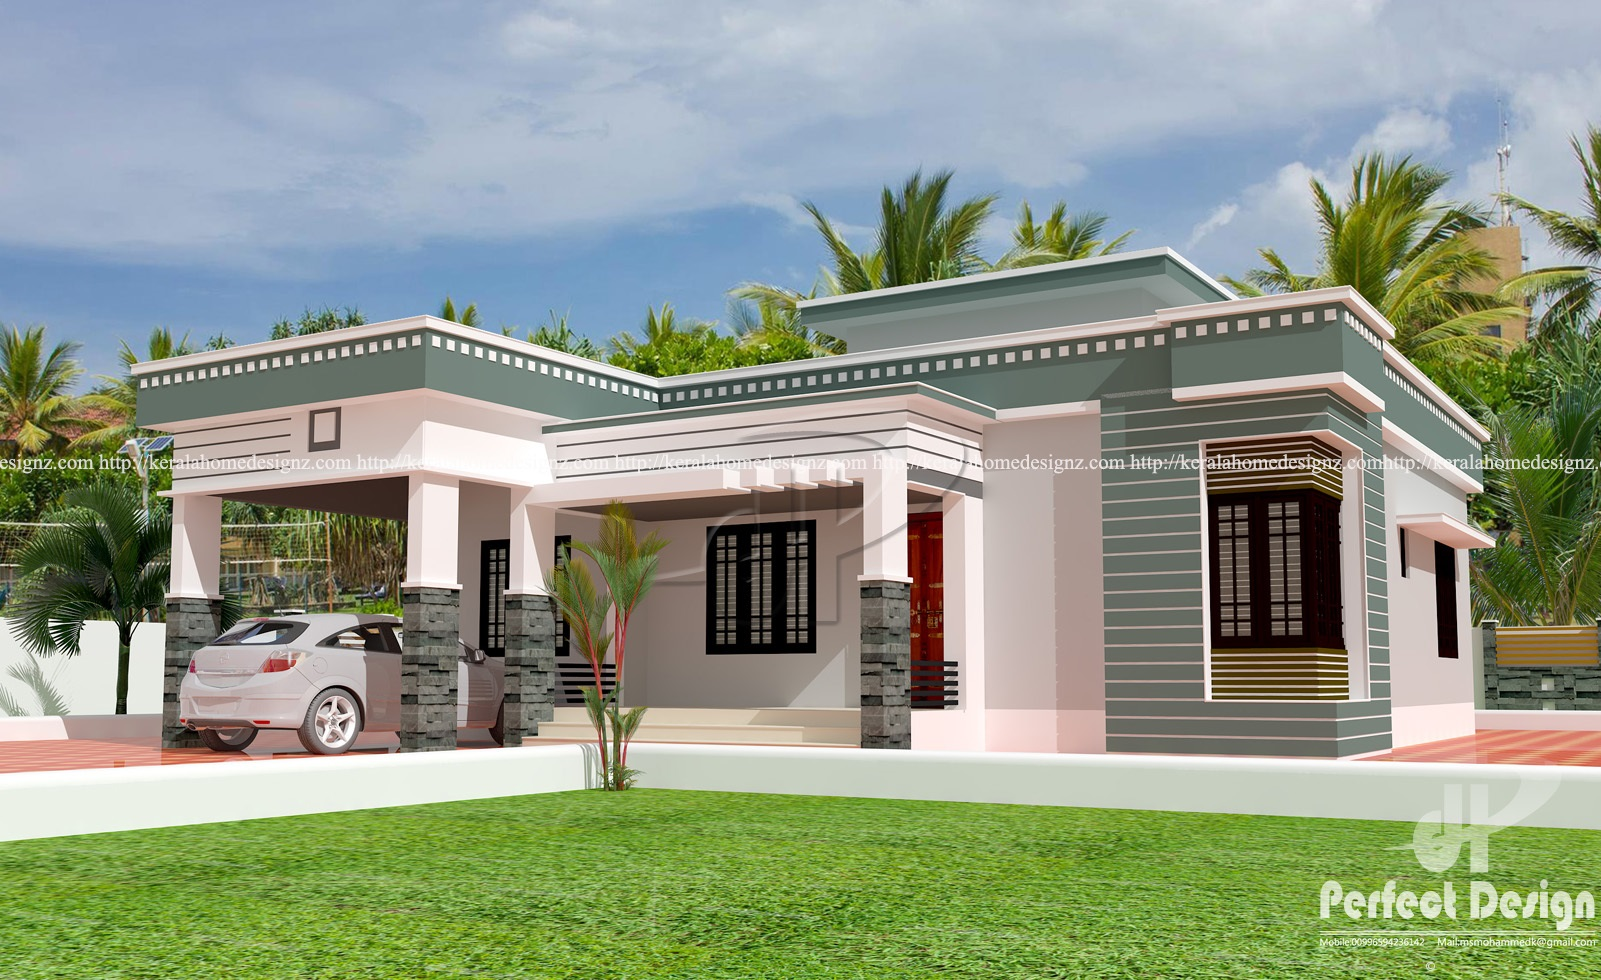 3 bed room modern single floor home kerala home design for Single floor house plans